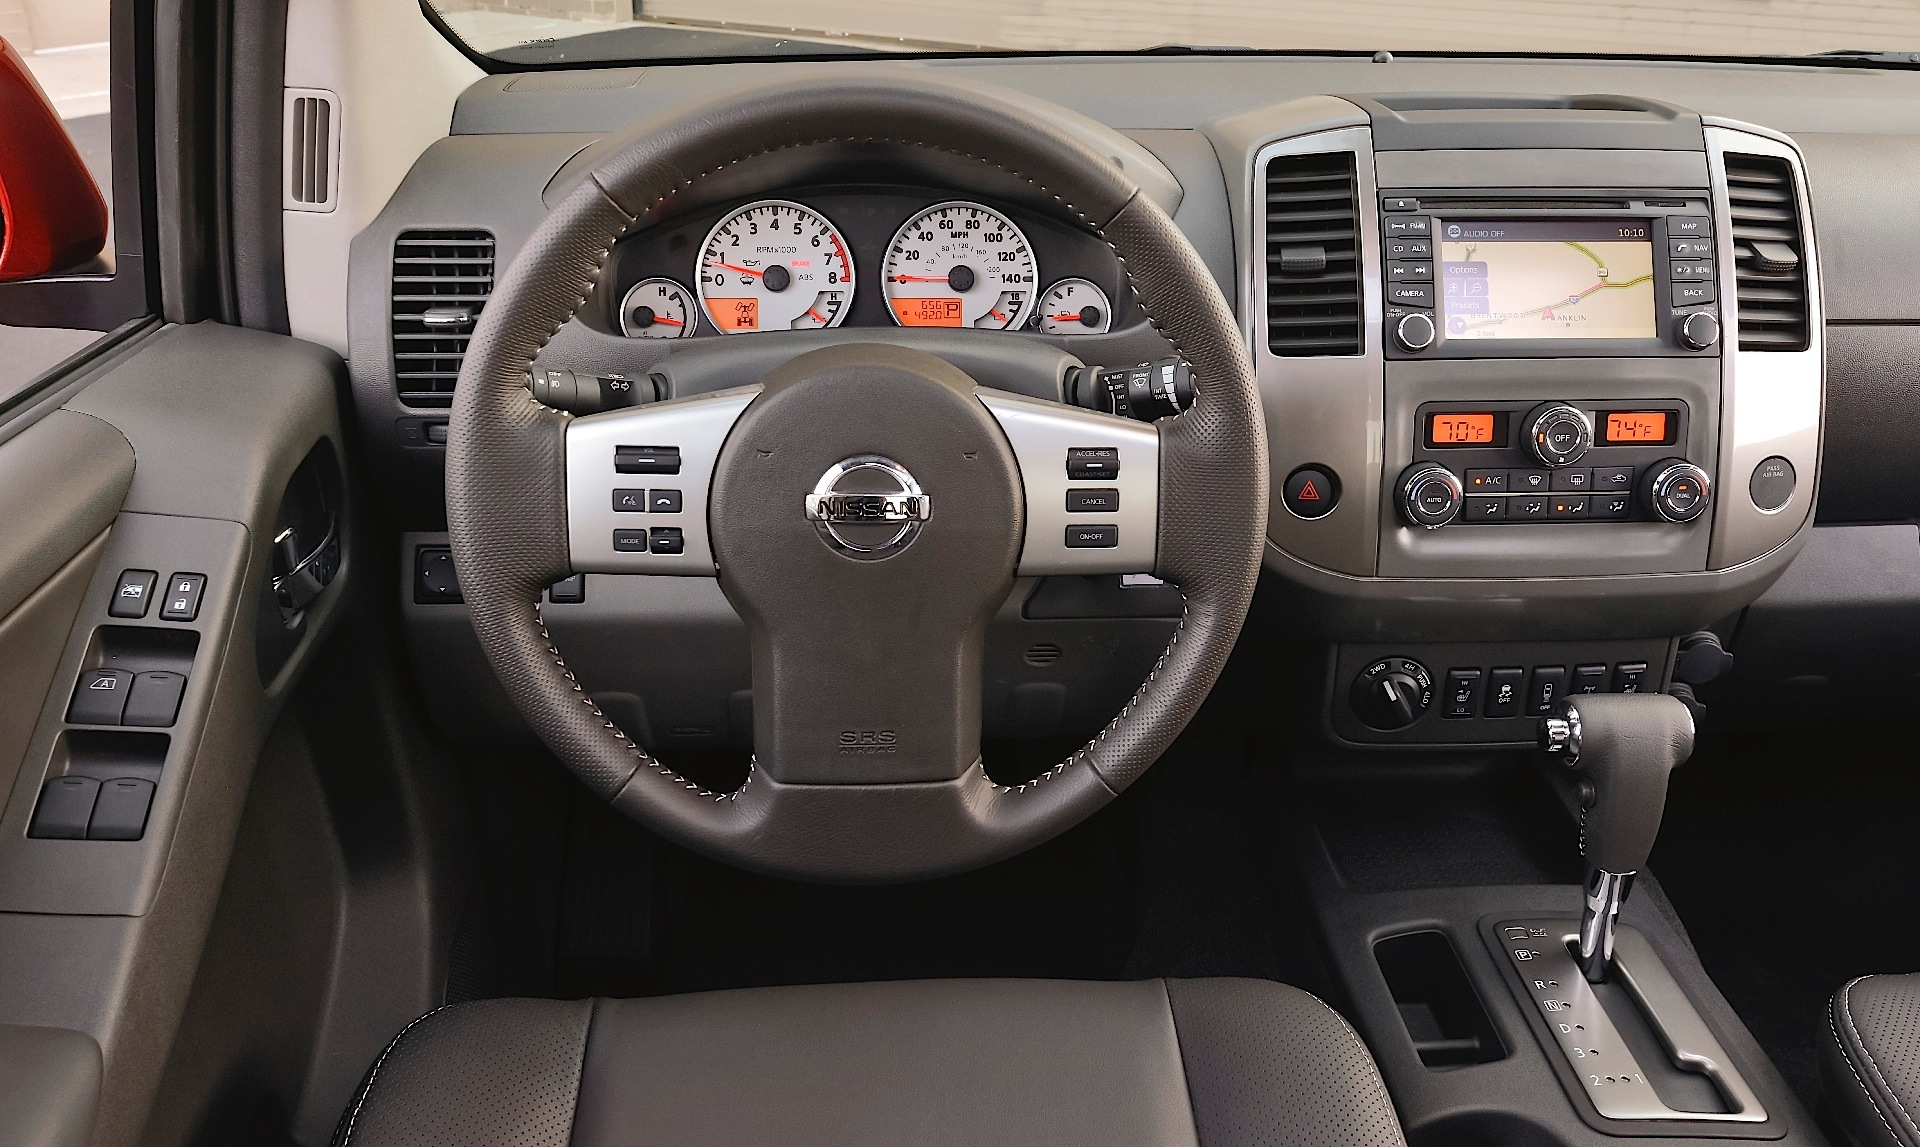 2010 Nissan Frontier Se 4X4 hd image